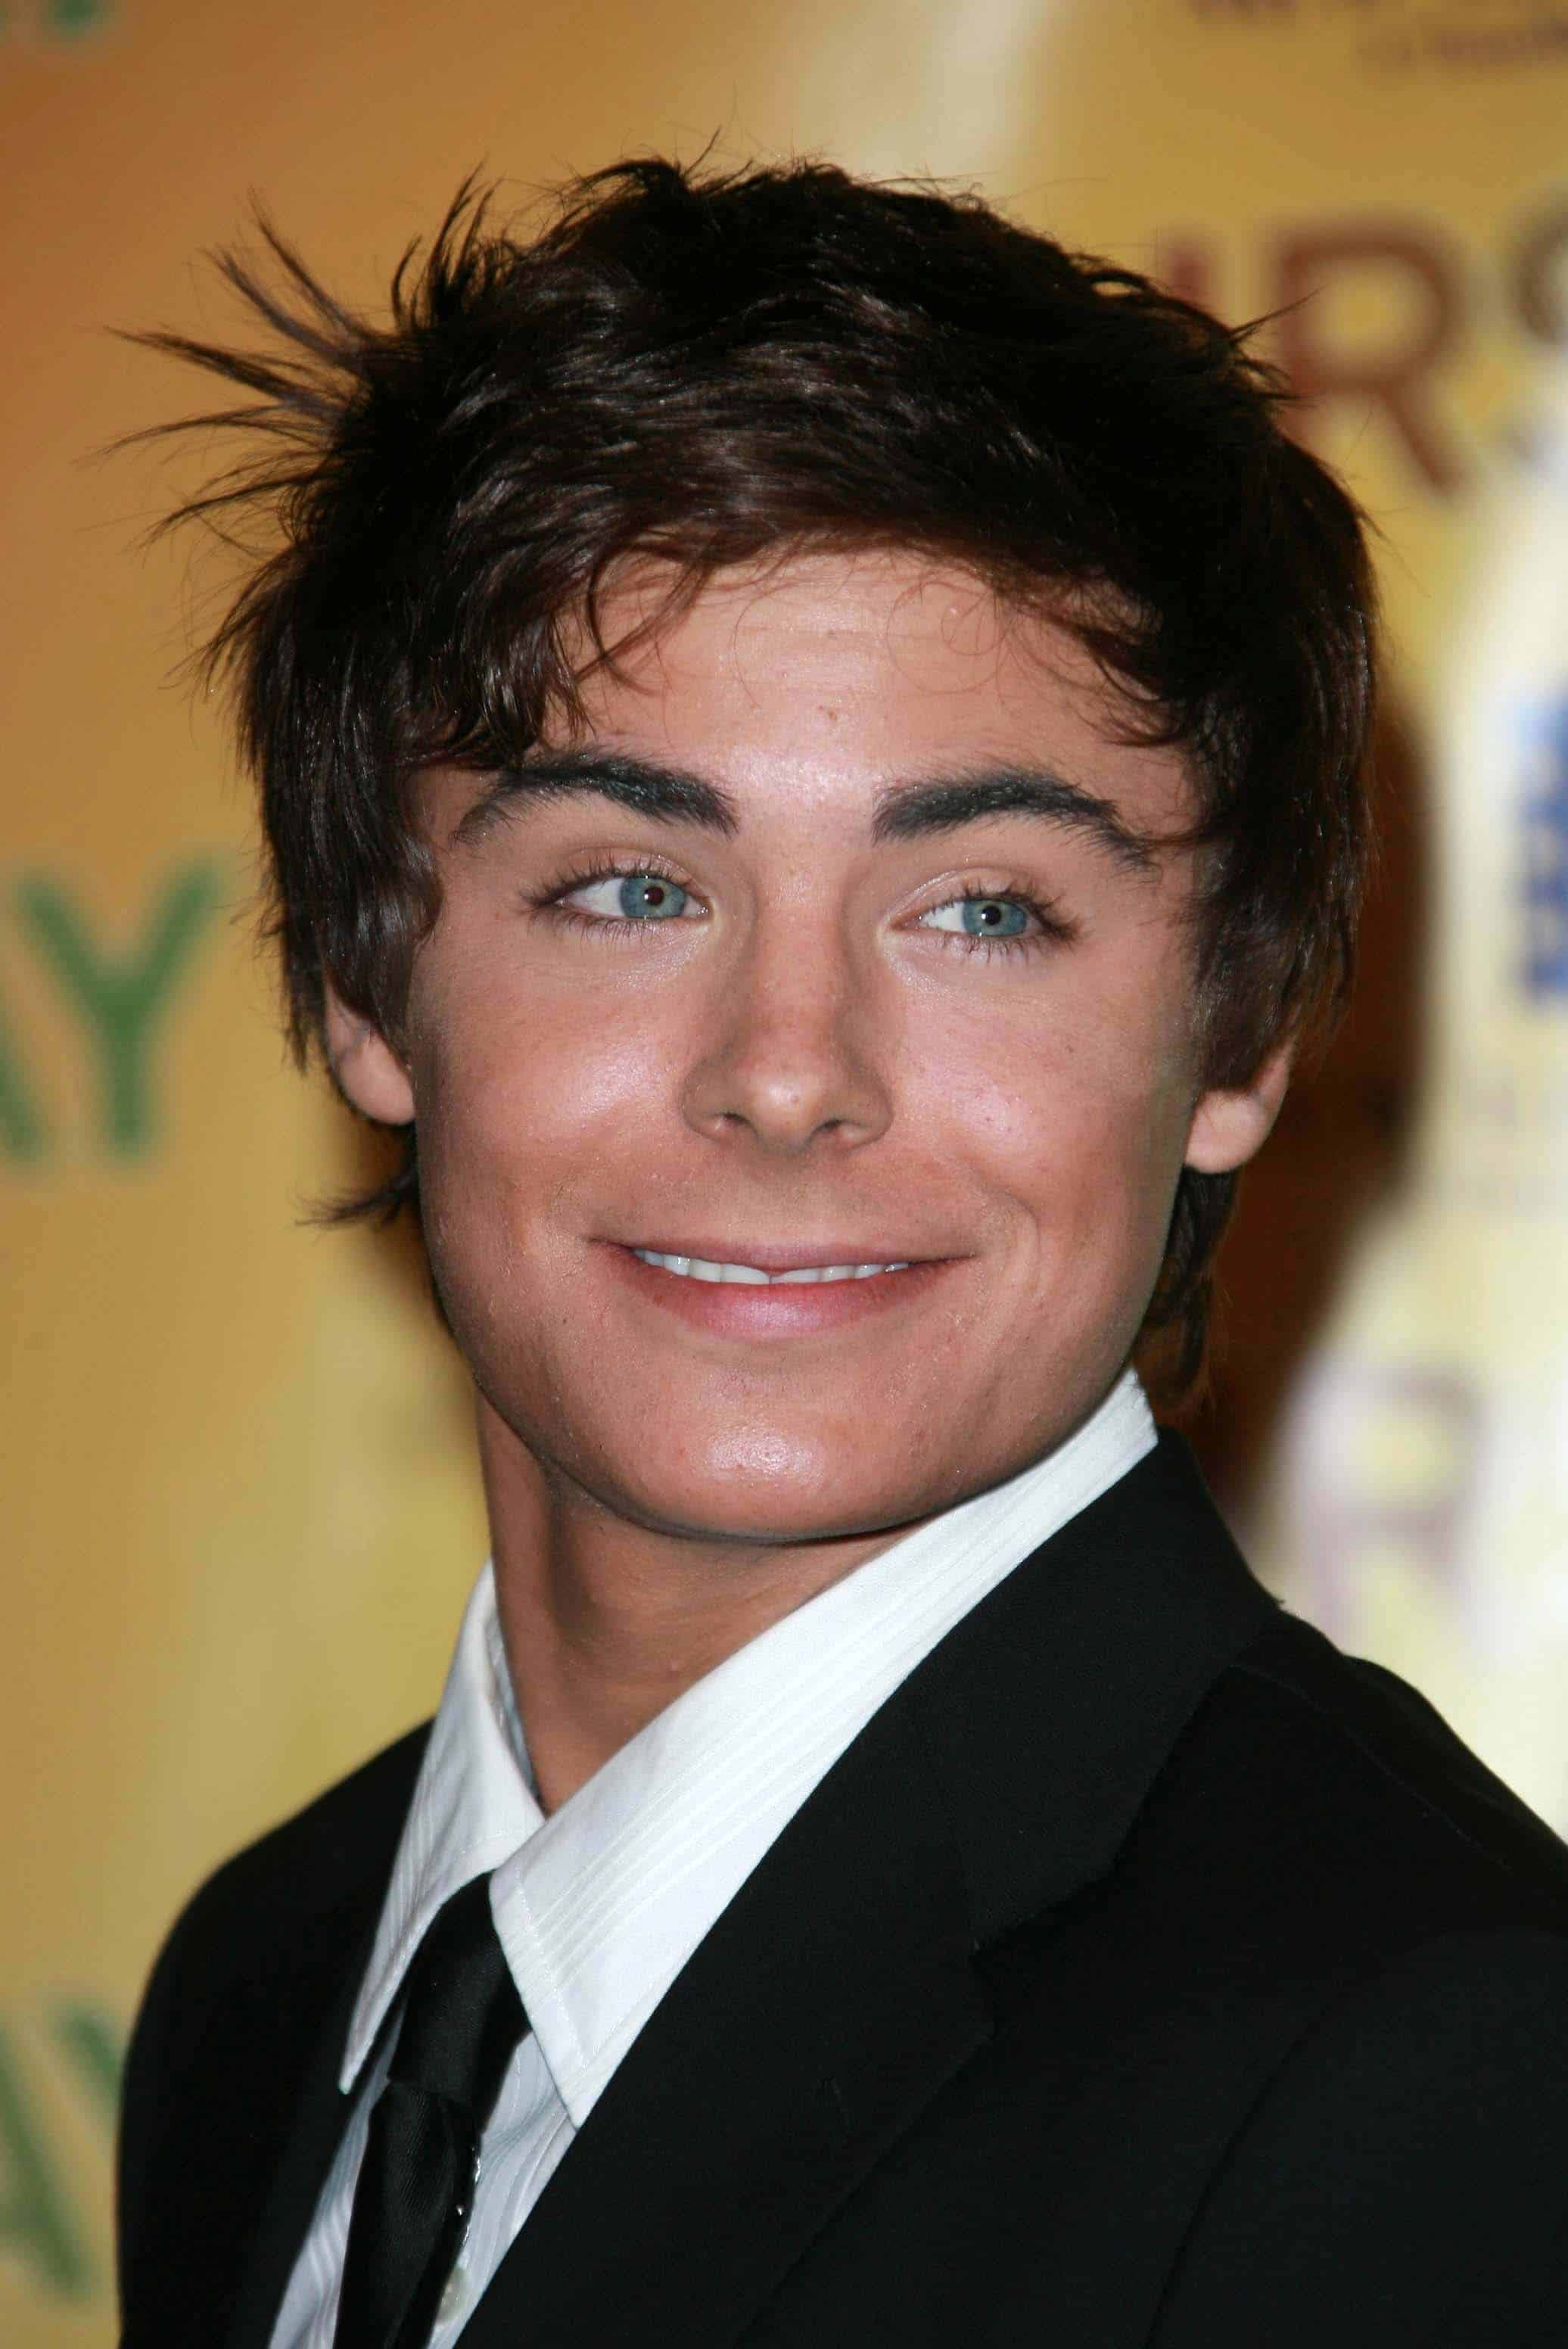 Zac Efron in his youth, at the ShoWest 2007 Photocall for